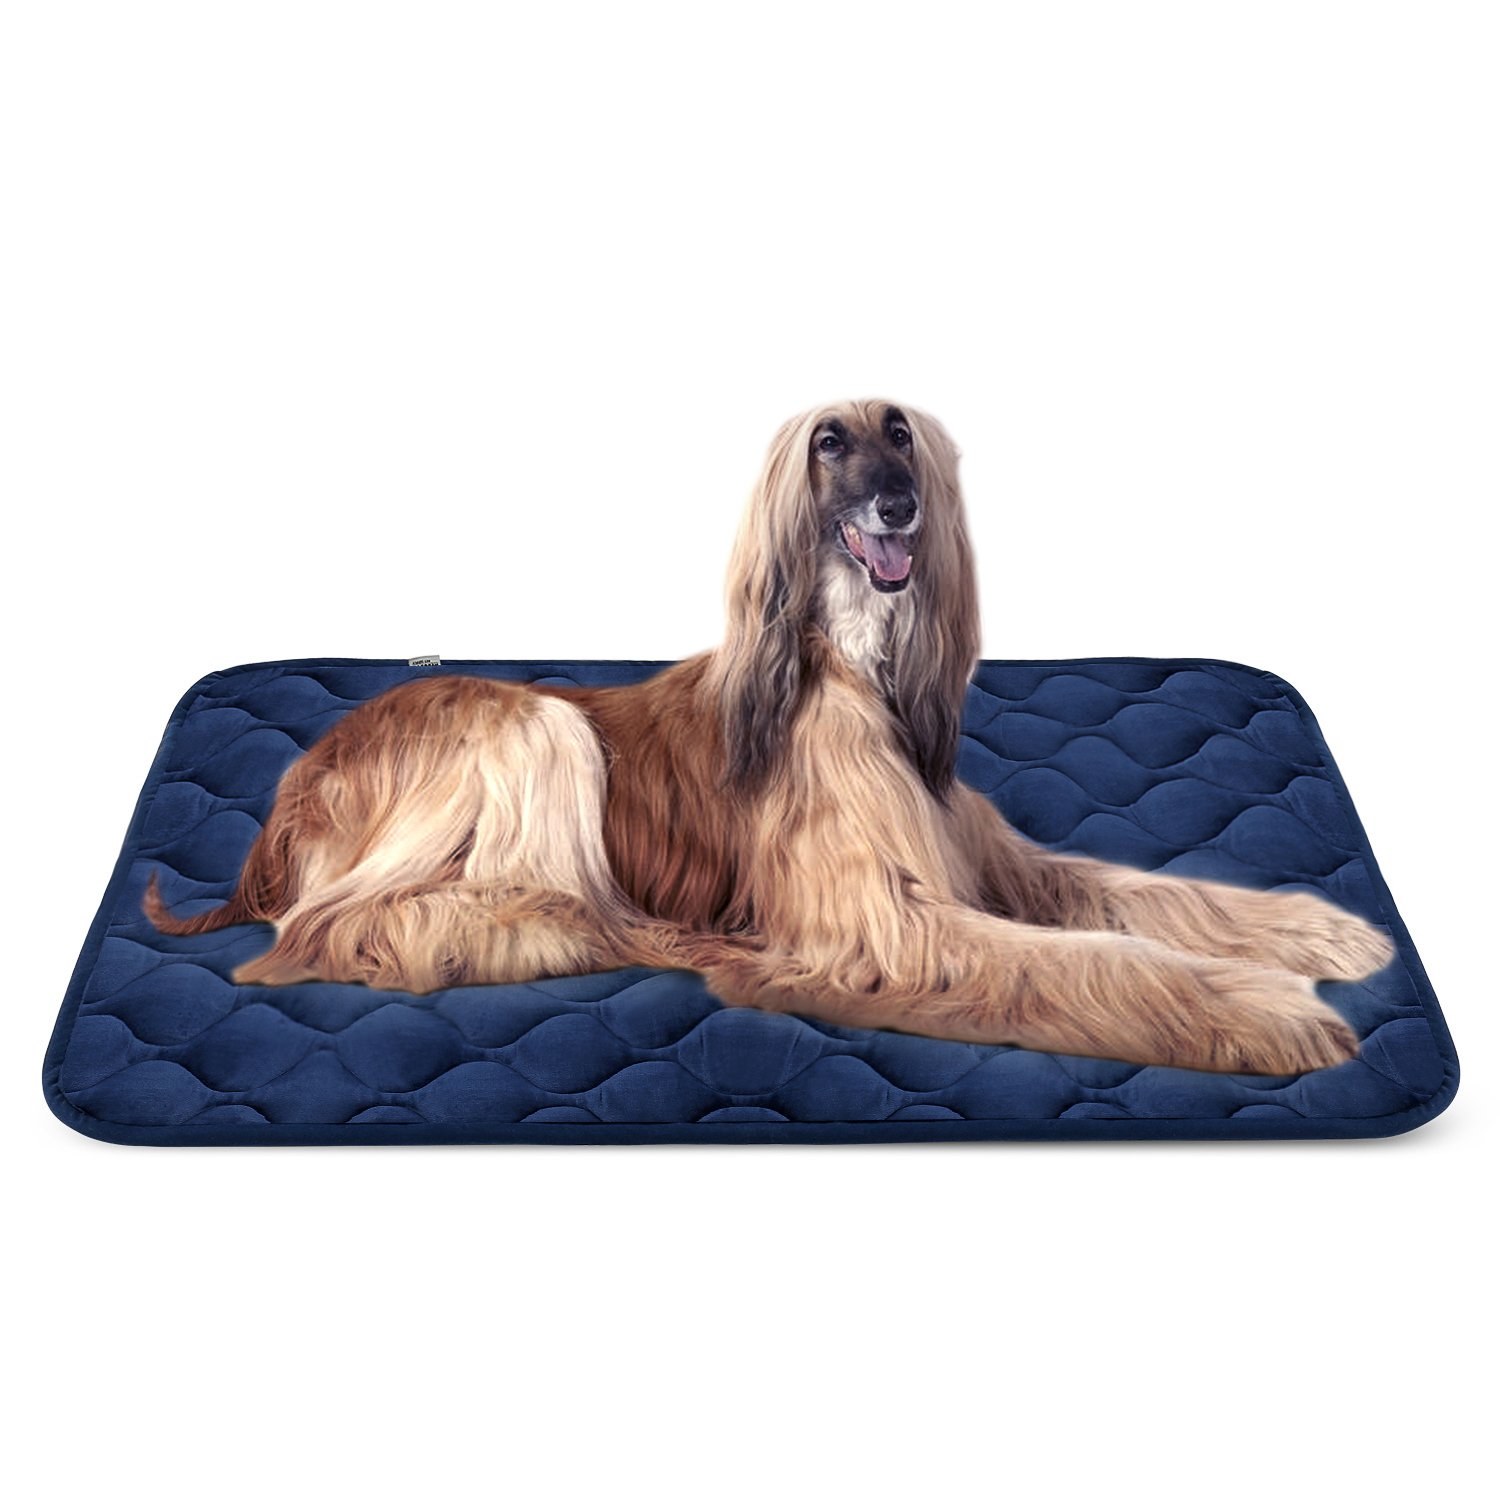 color 3 47 INHero Dog Large Dog Bed Mat 55 Inch Crate Pad Anti Slip Mattress Washable for Pets Sleeping (bluee XXL)